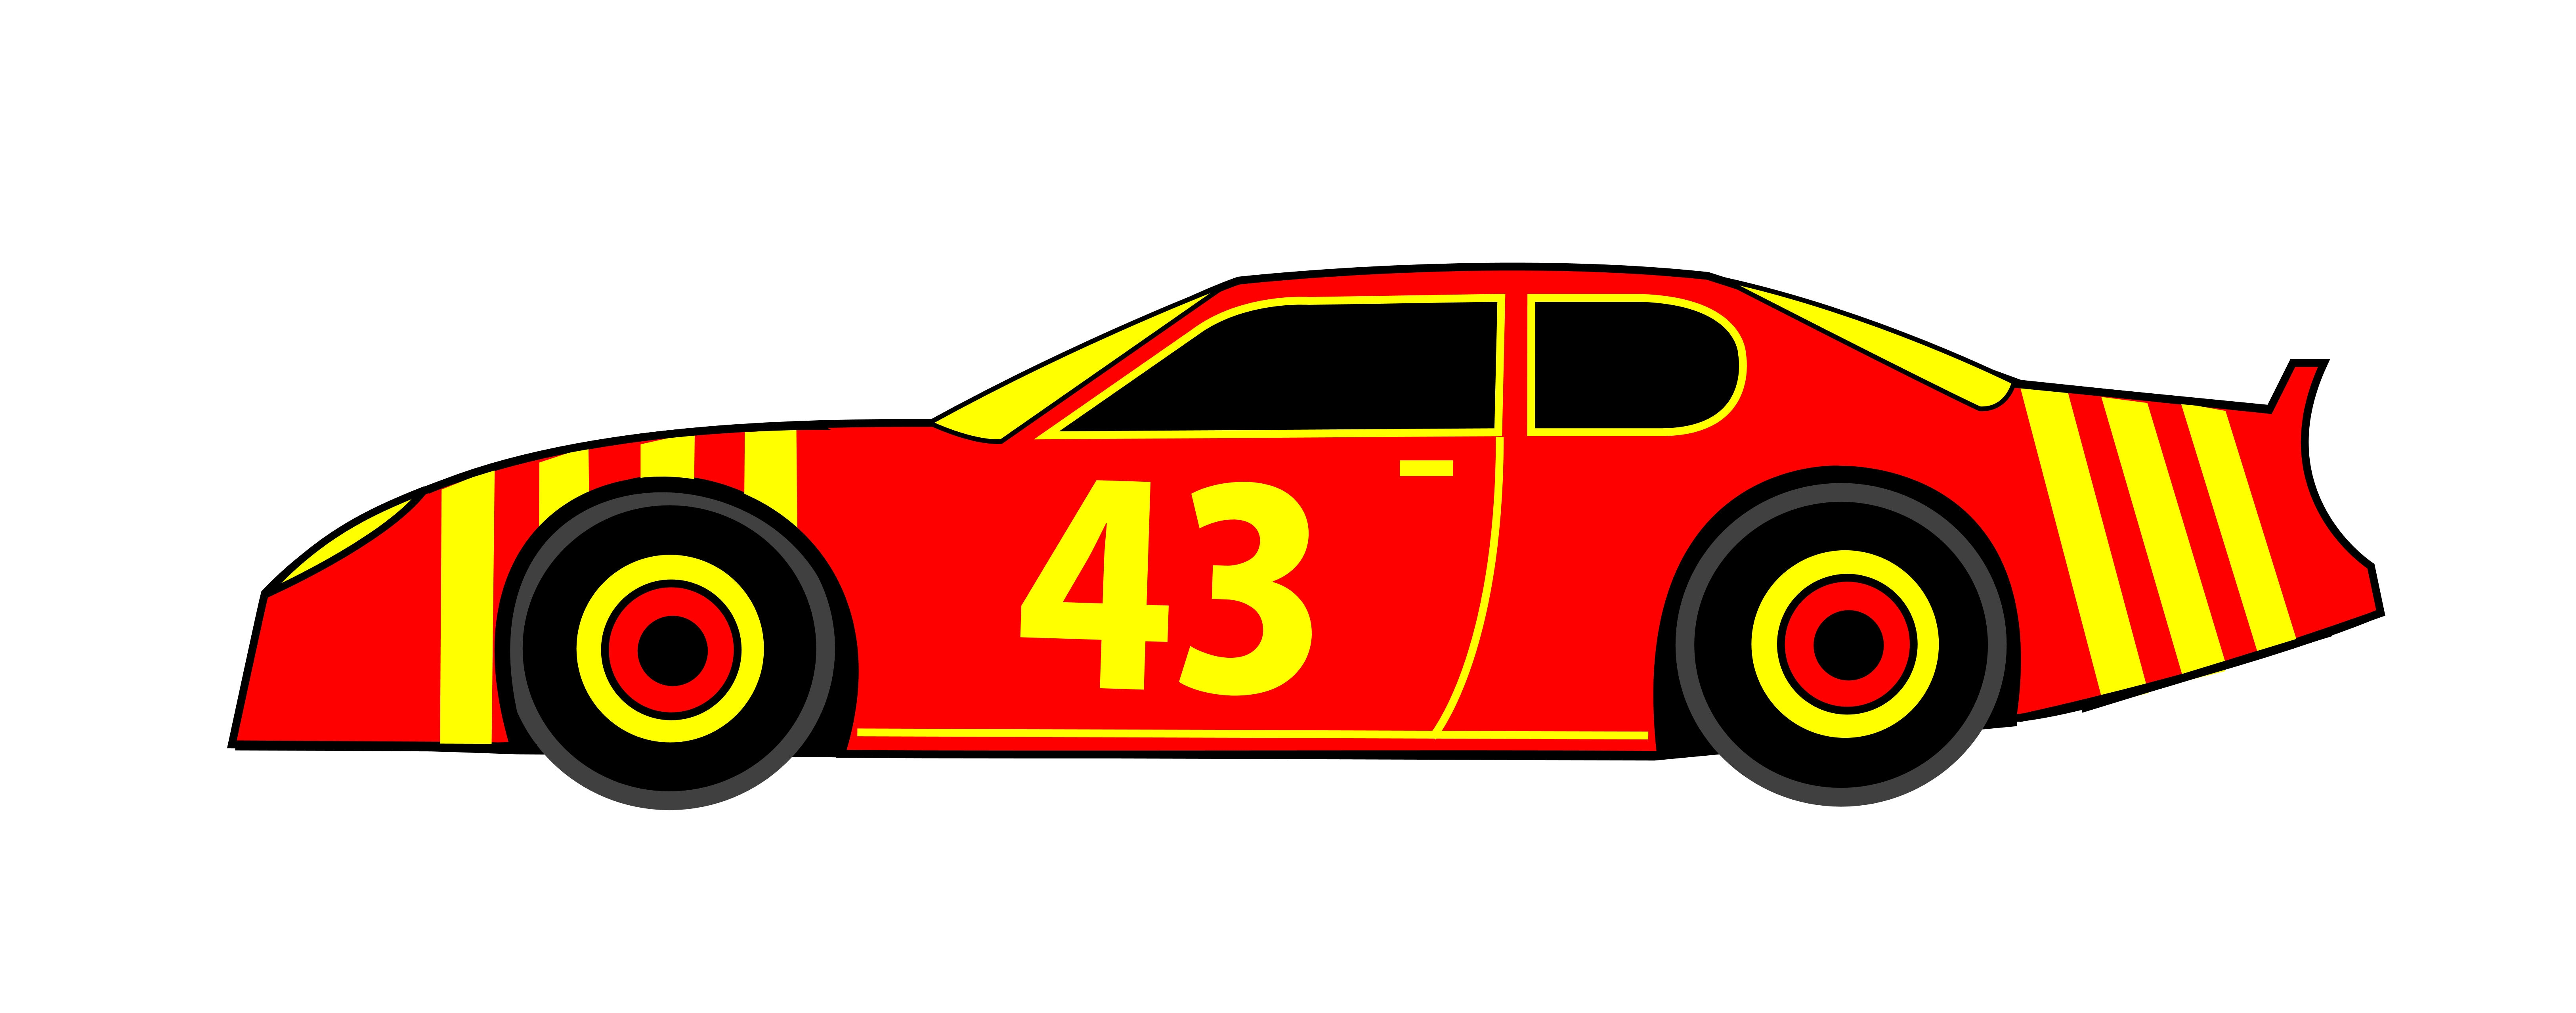 6500x2555 Collection Of Race Car Clipart High Quality, Free Cliparts